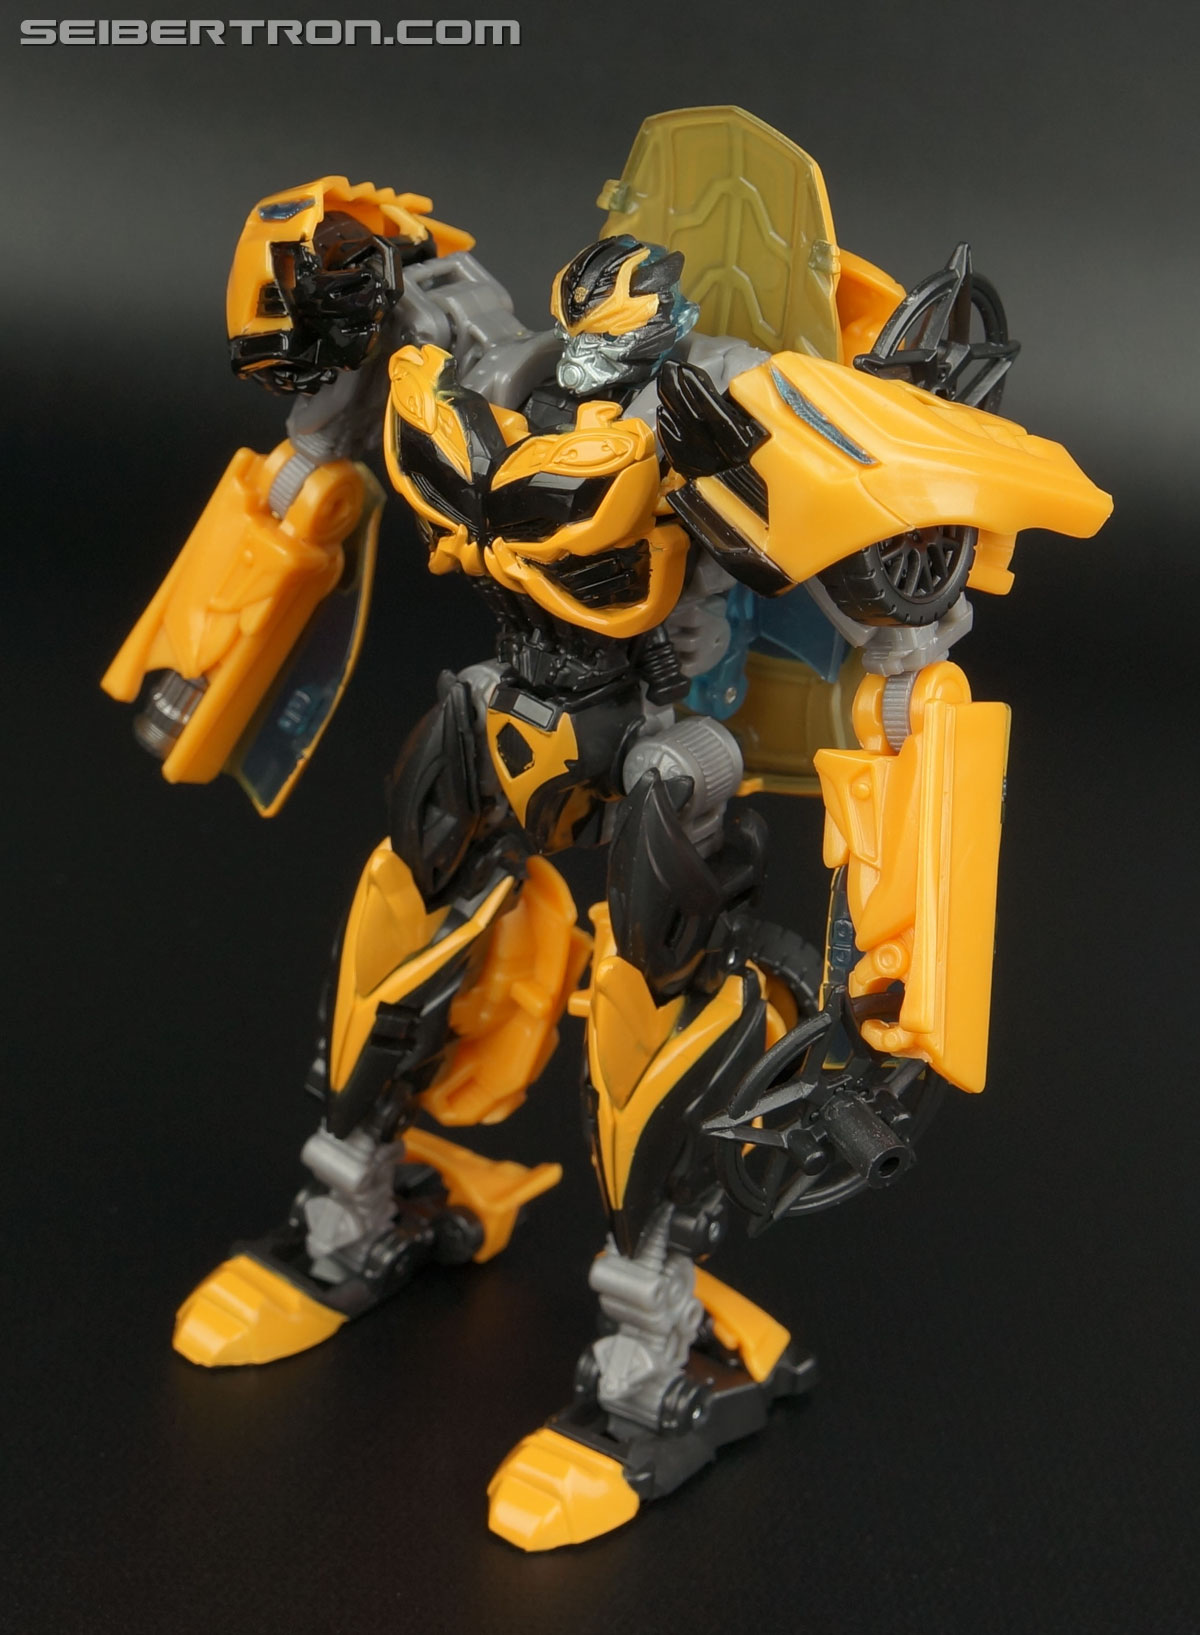 Transformers Age of Extinction: Generations Bumblebee (Image #75 of 190)